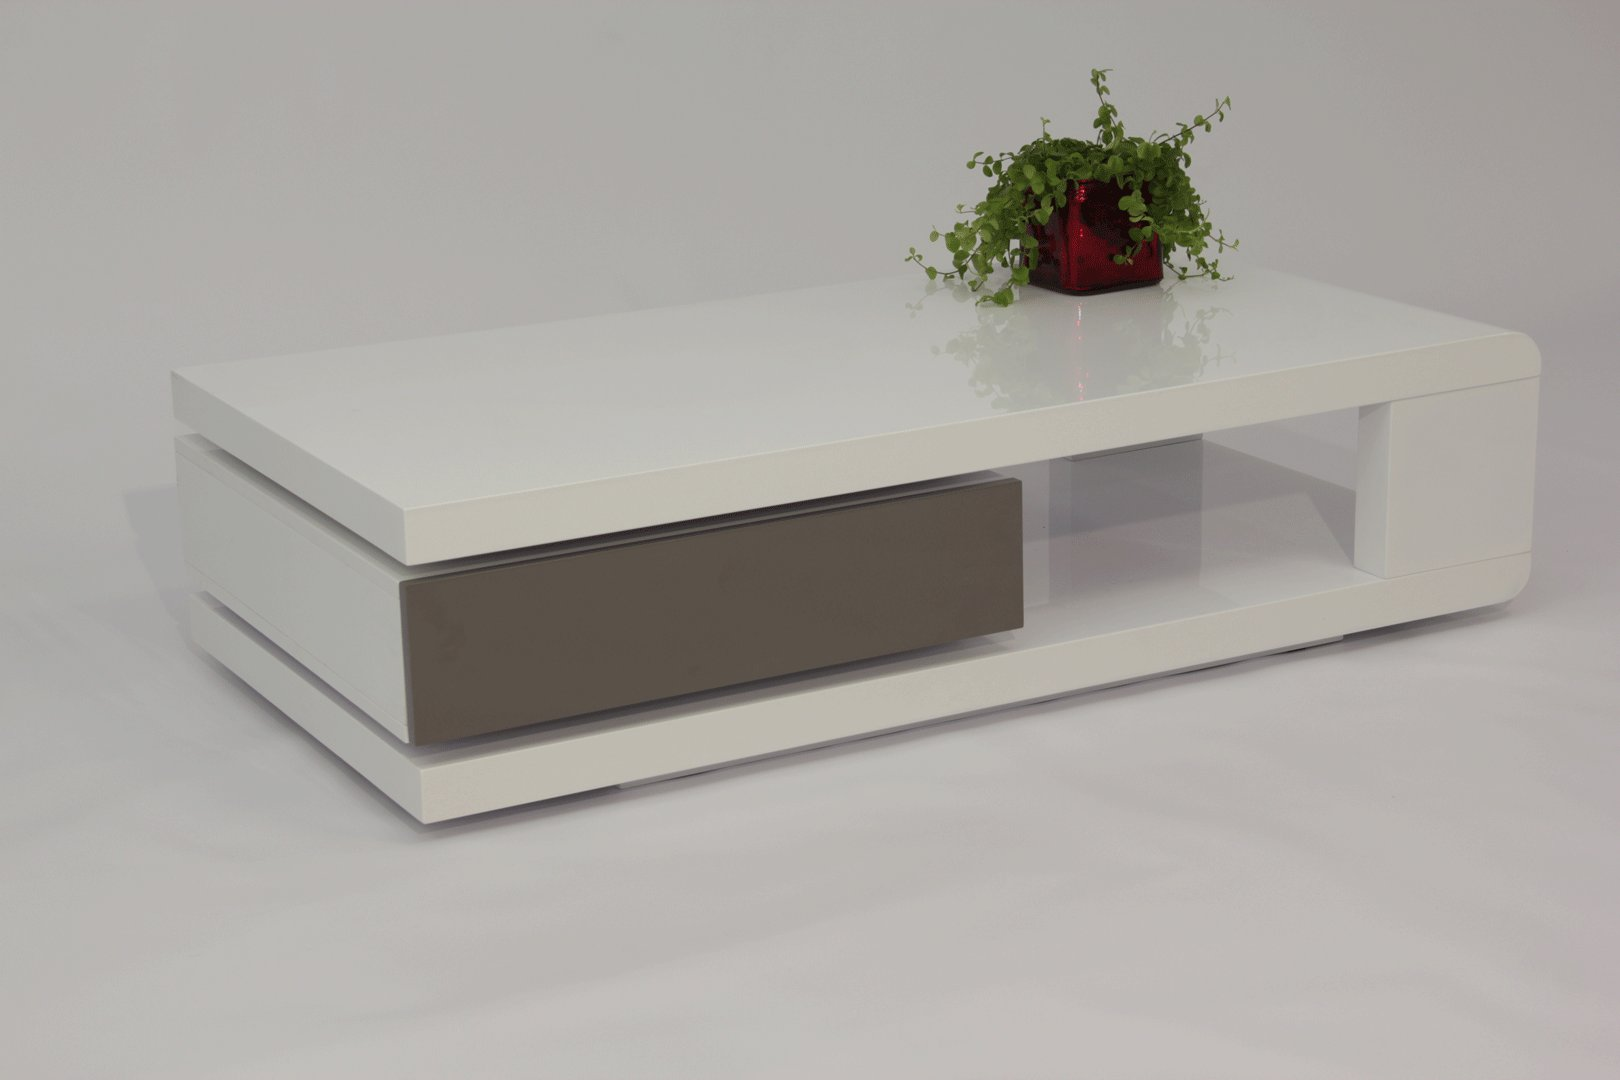 Table Basse Design Blanche Table Basse Design Laquée Blanche Et Grise Jawa Matelpro